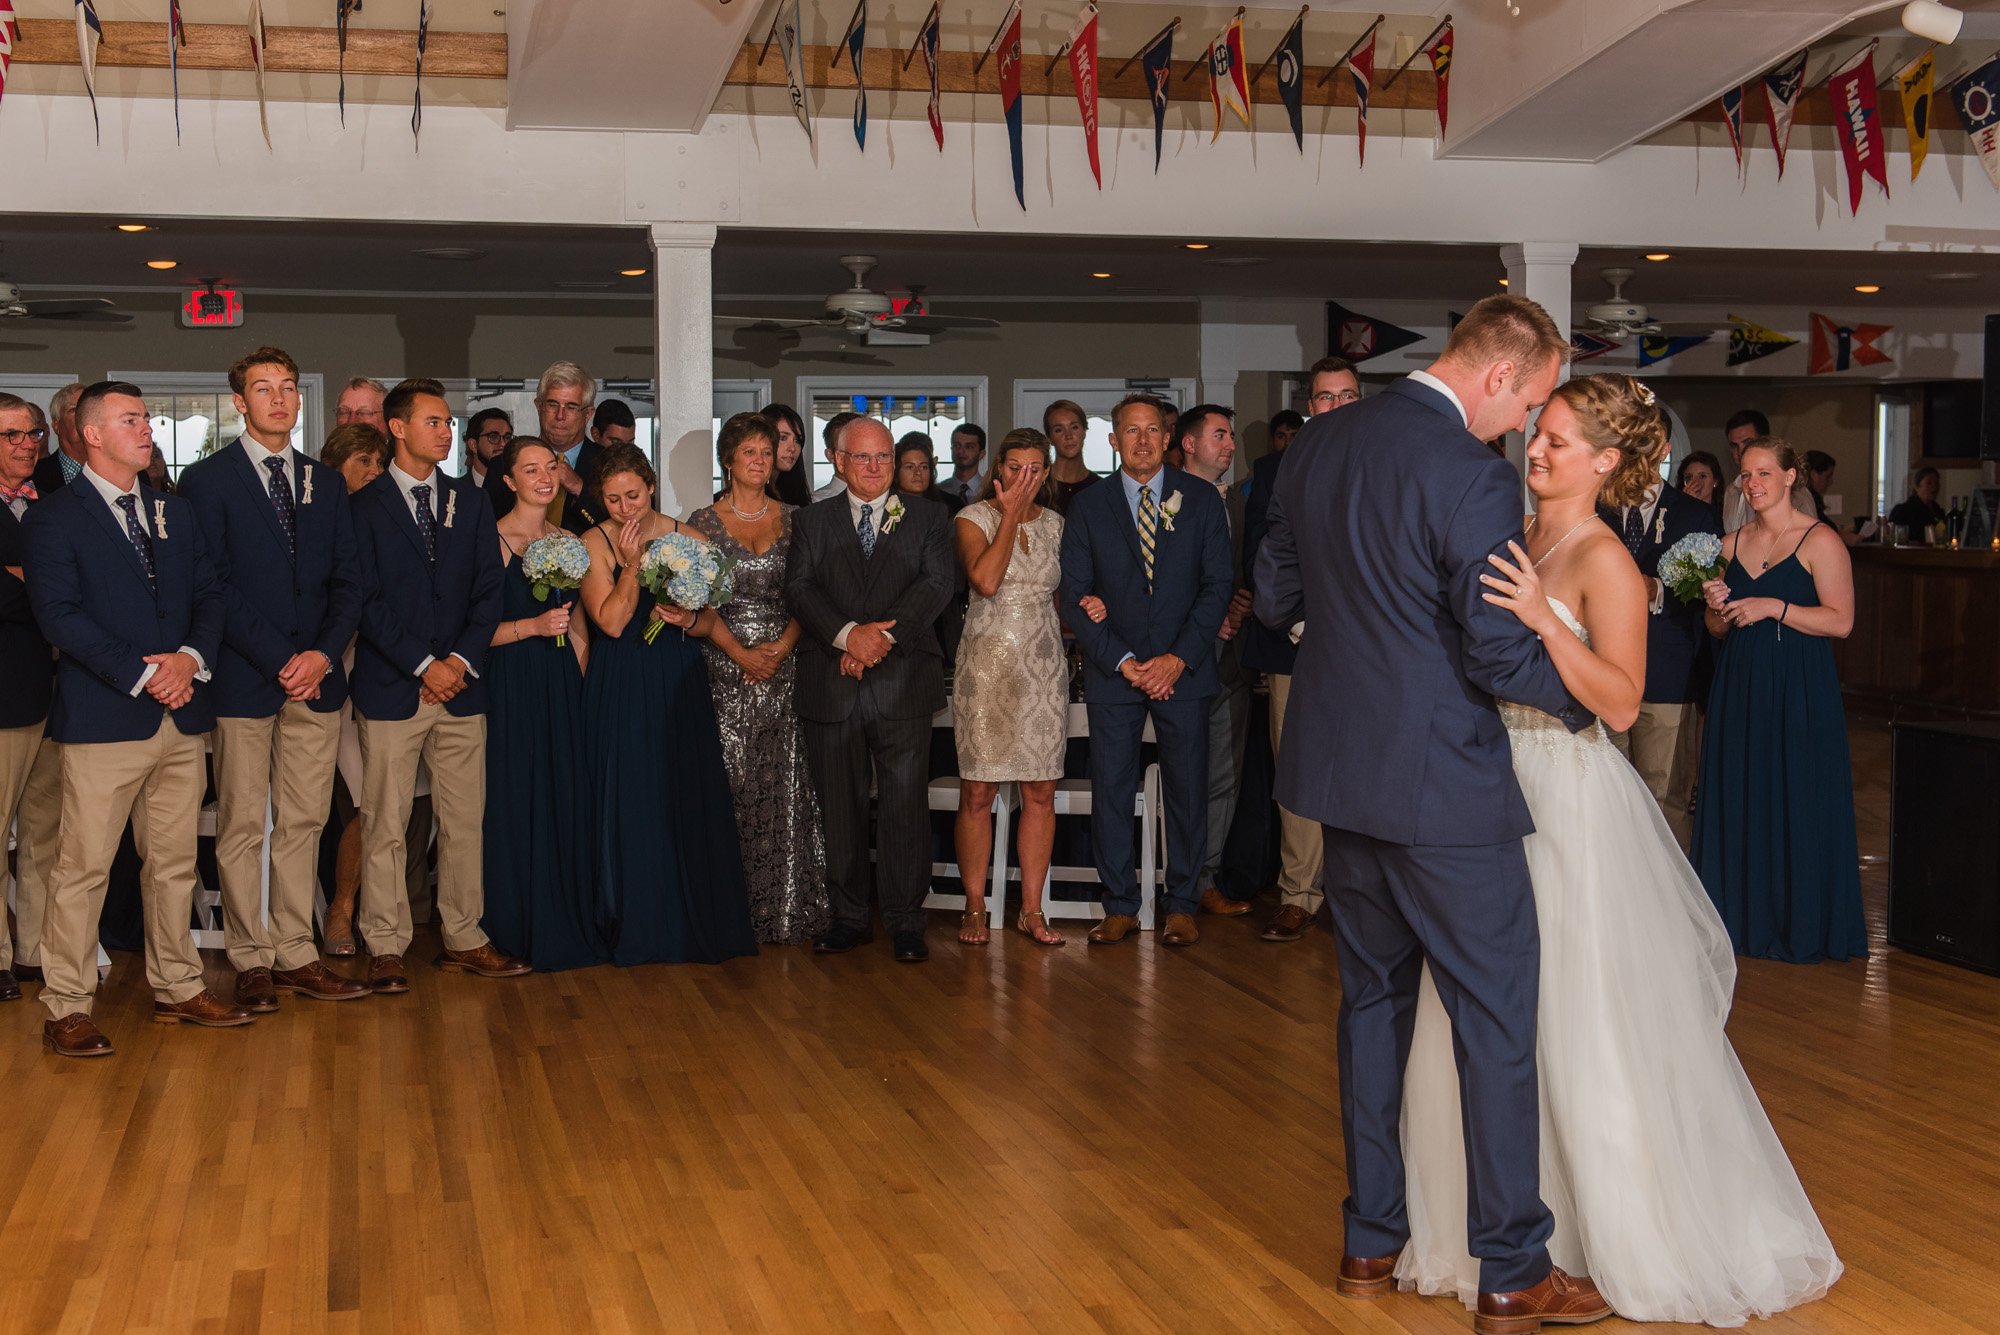 brant-beach-yacht-club-lbi-wedding-photographer-kayla-37.jpg